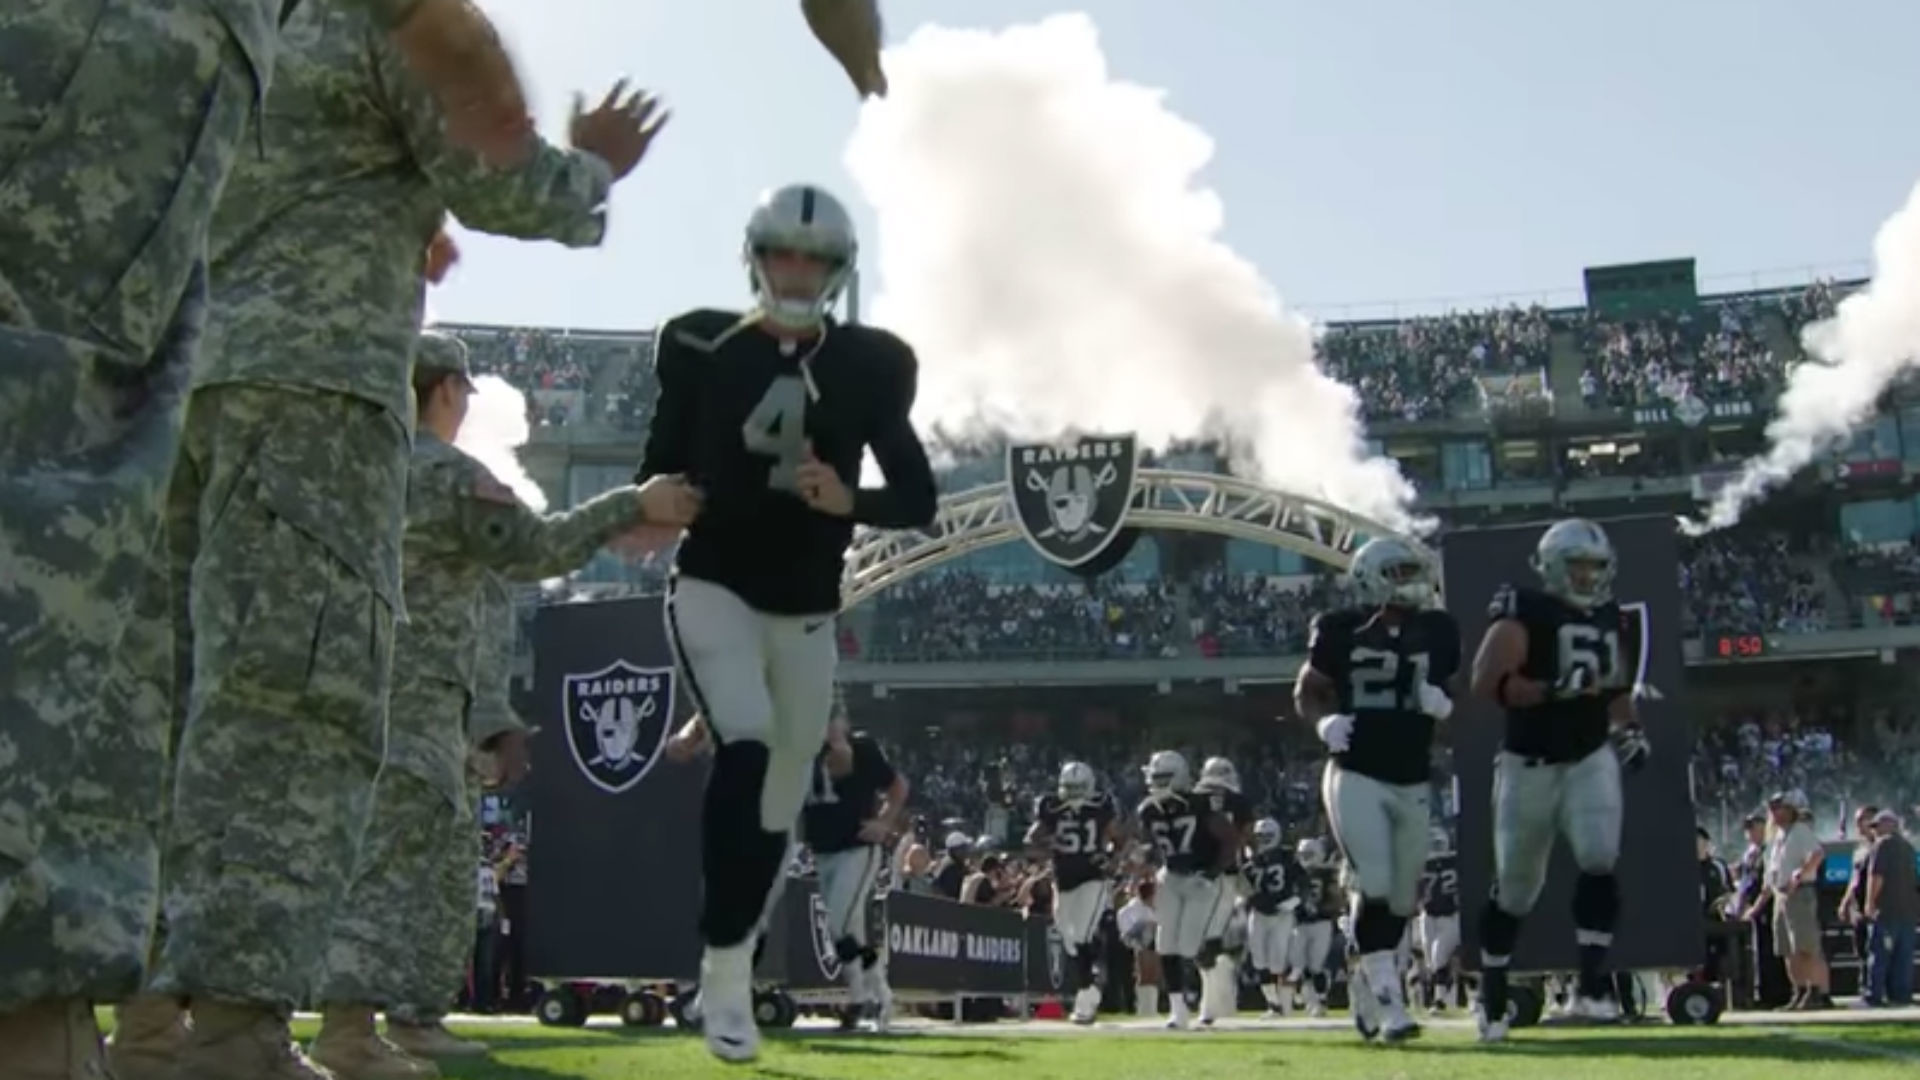 All Vegas is missing is new stadium for Oakland Raiders, investors pitch in  video | NFL | Sporting News